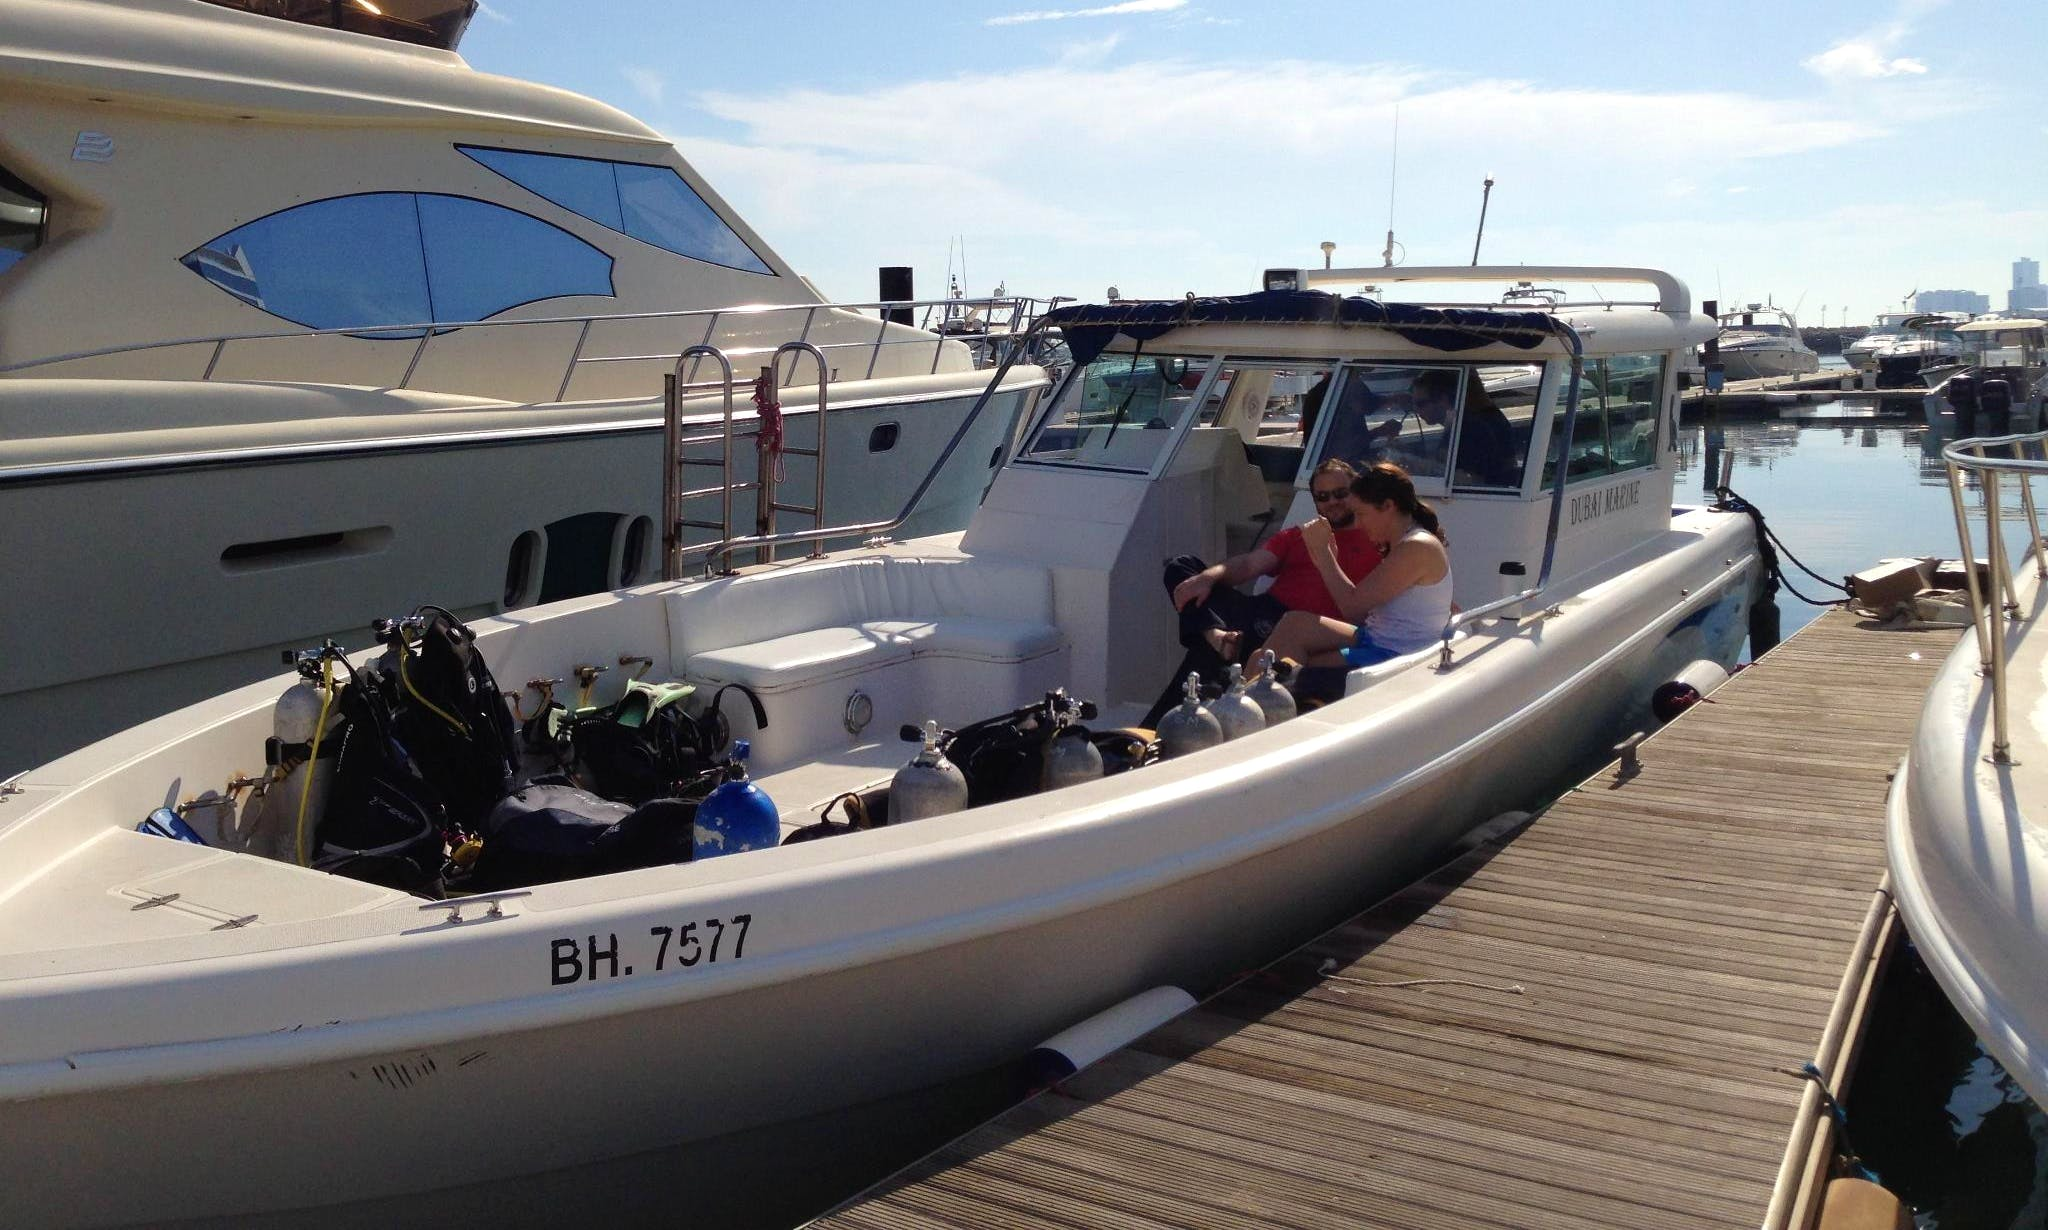 38 Foot Boat Diving, Snorkeling, Fishing Trips, Island Hopping & more in Bahrain